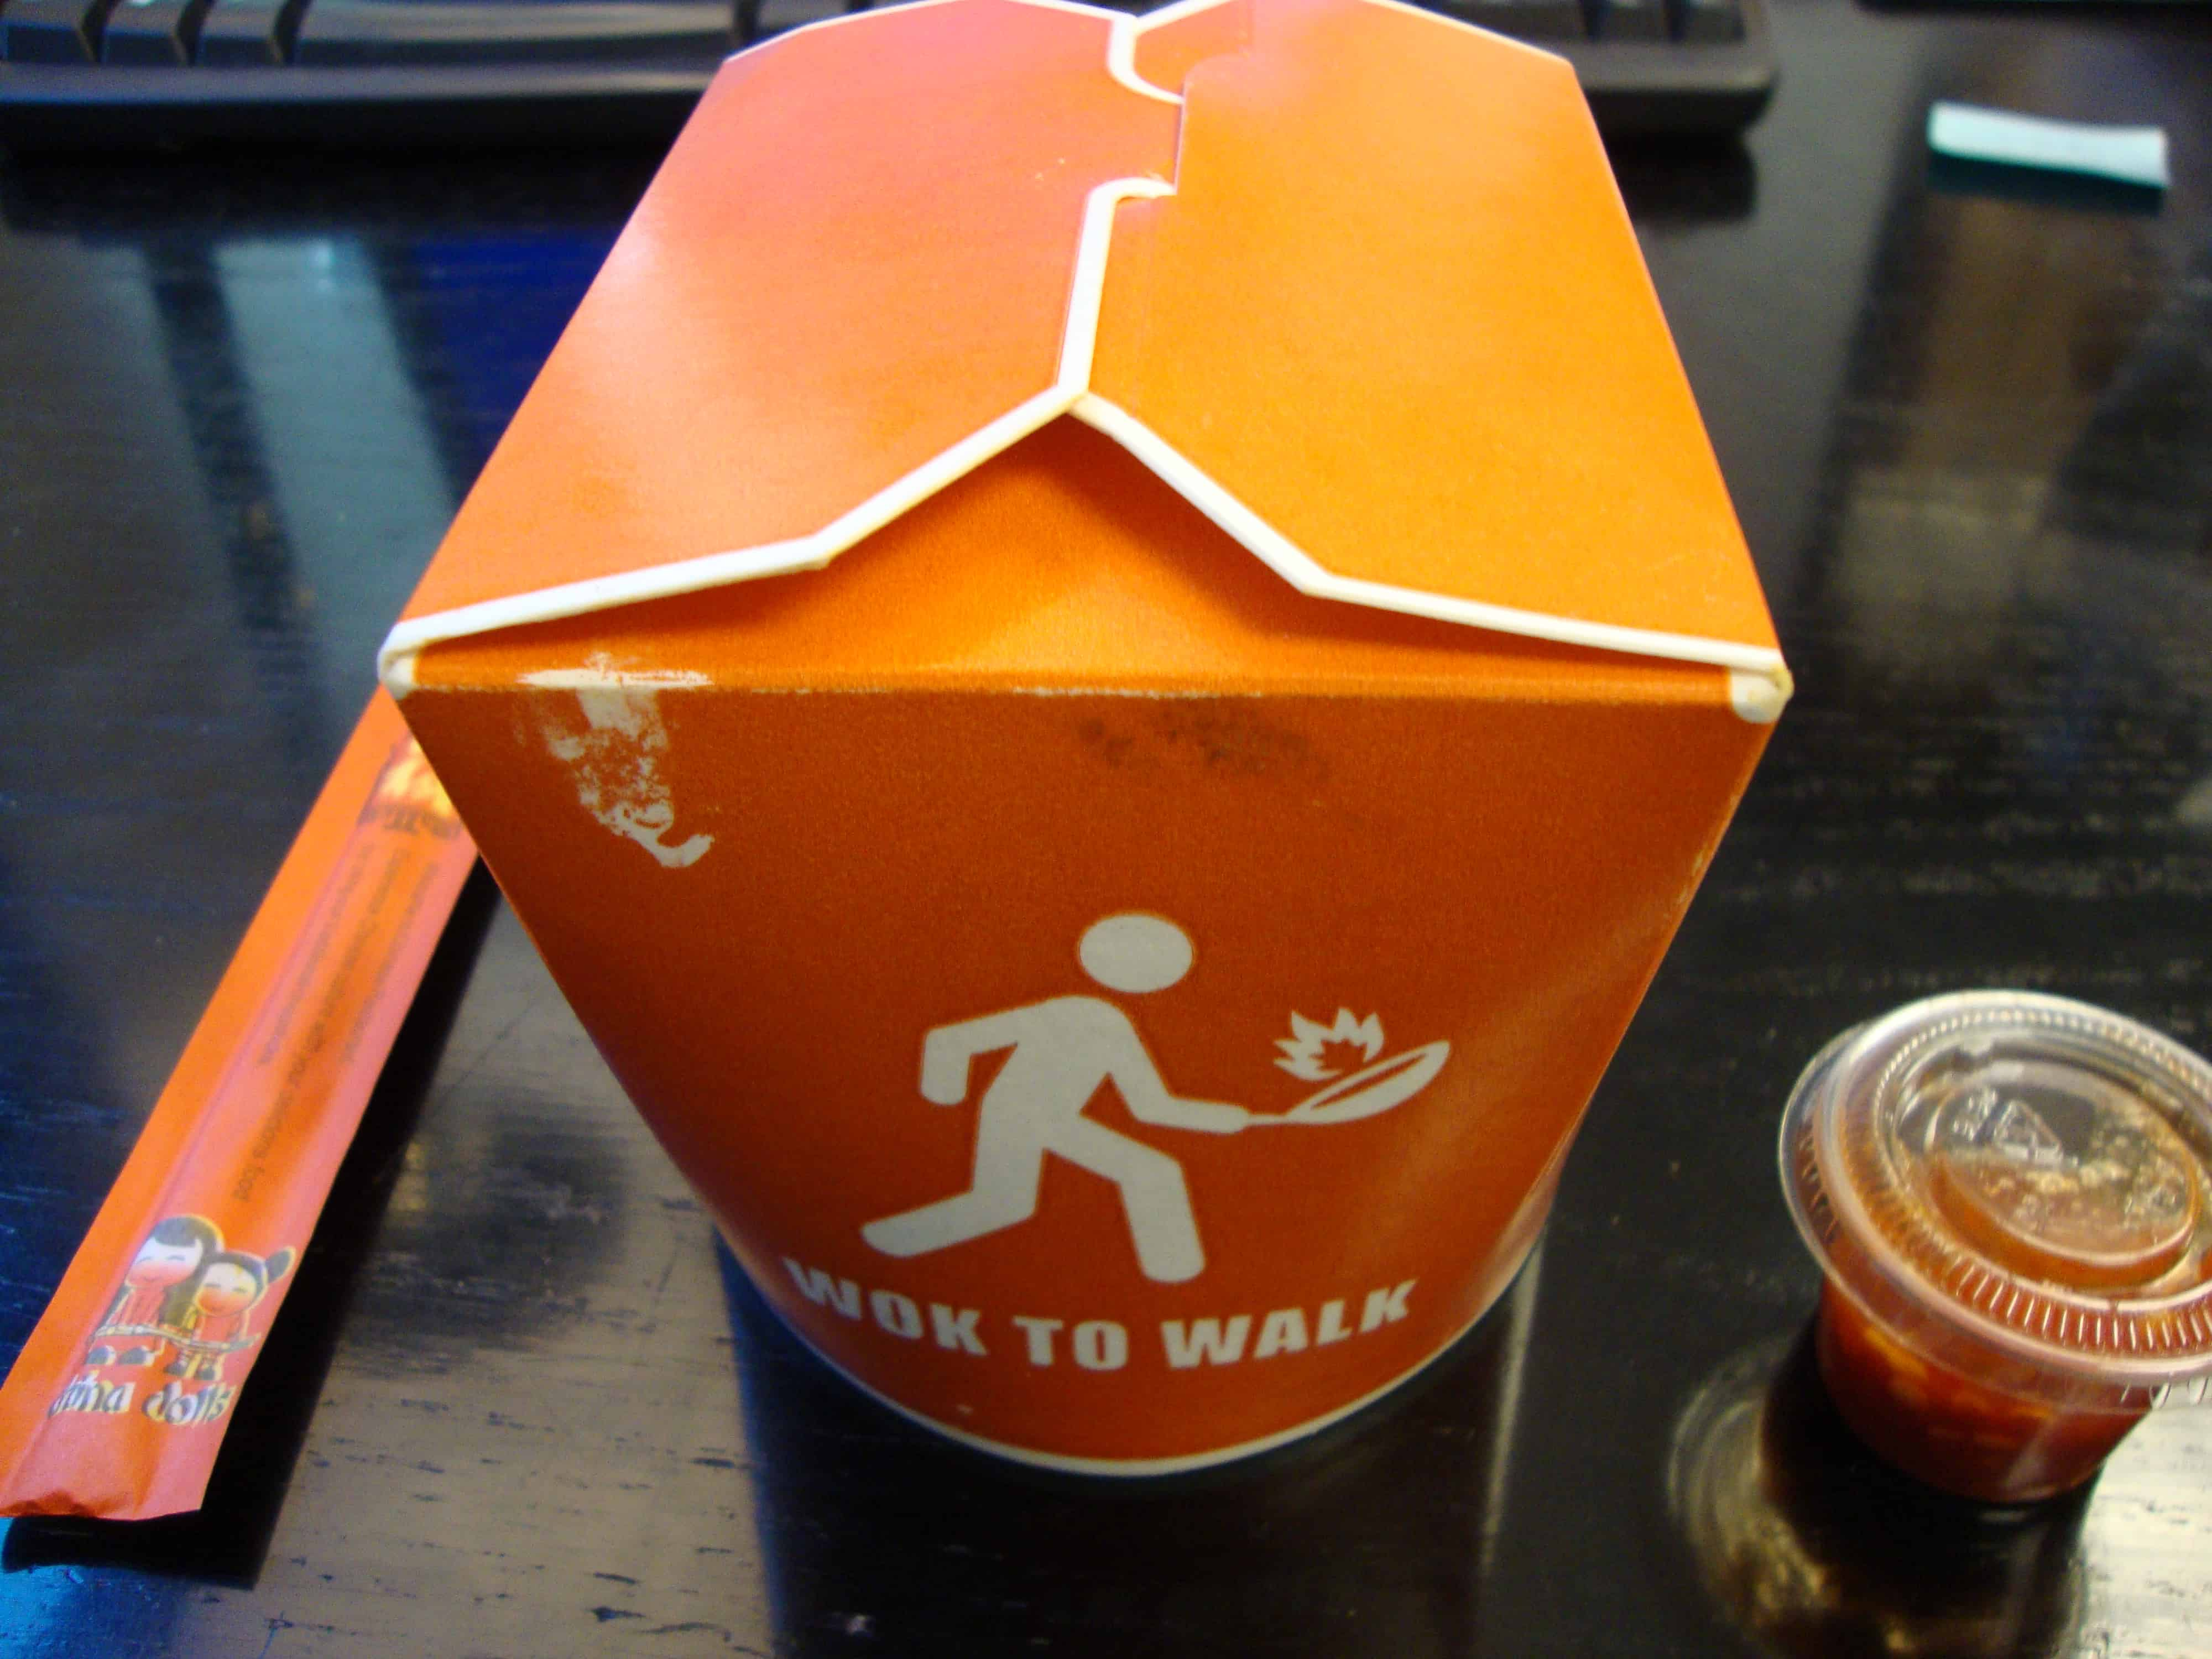 1-6-10 Wok to Walk container